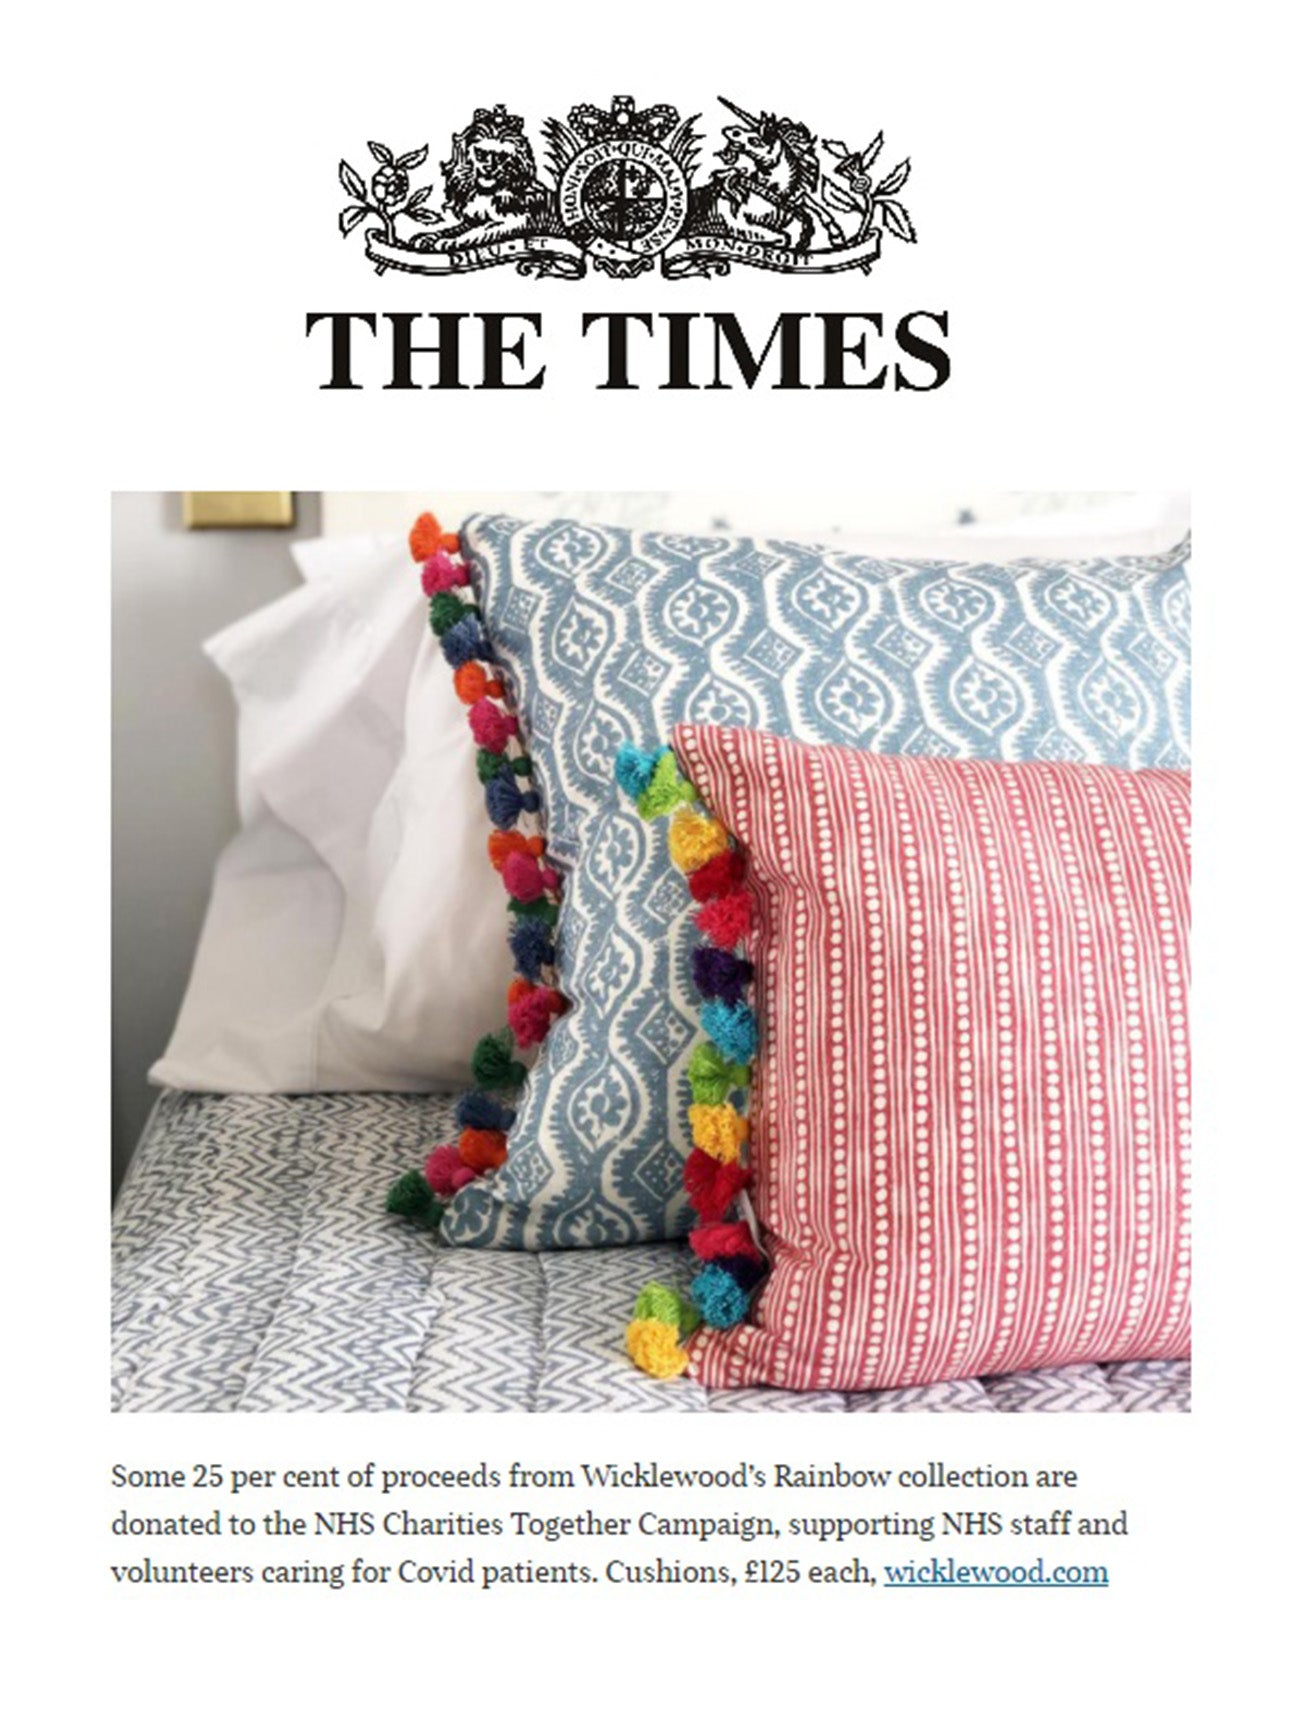 wicklewood rainbow collection featured in the times